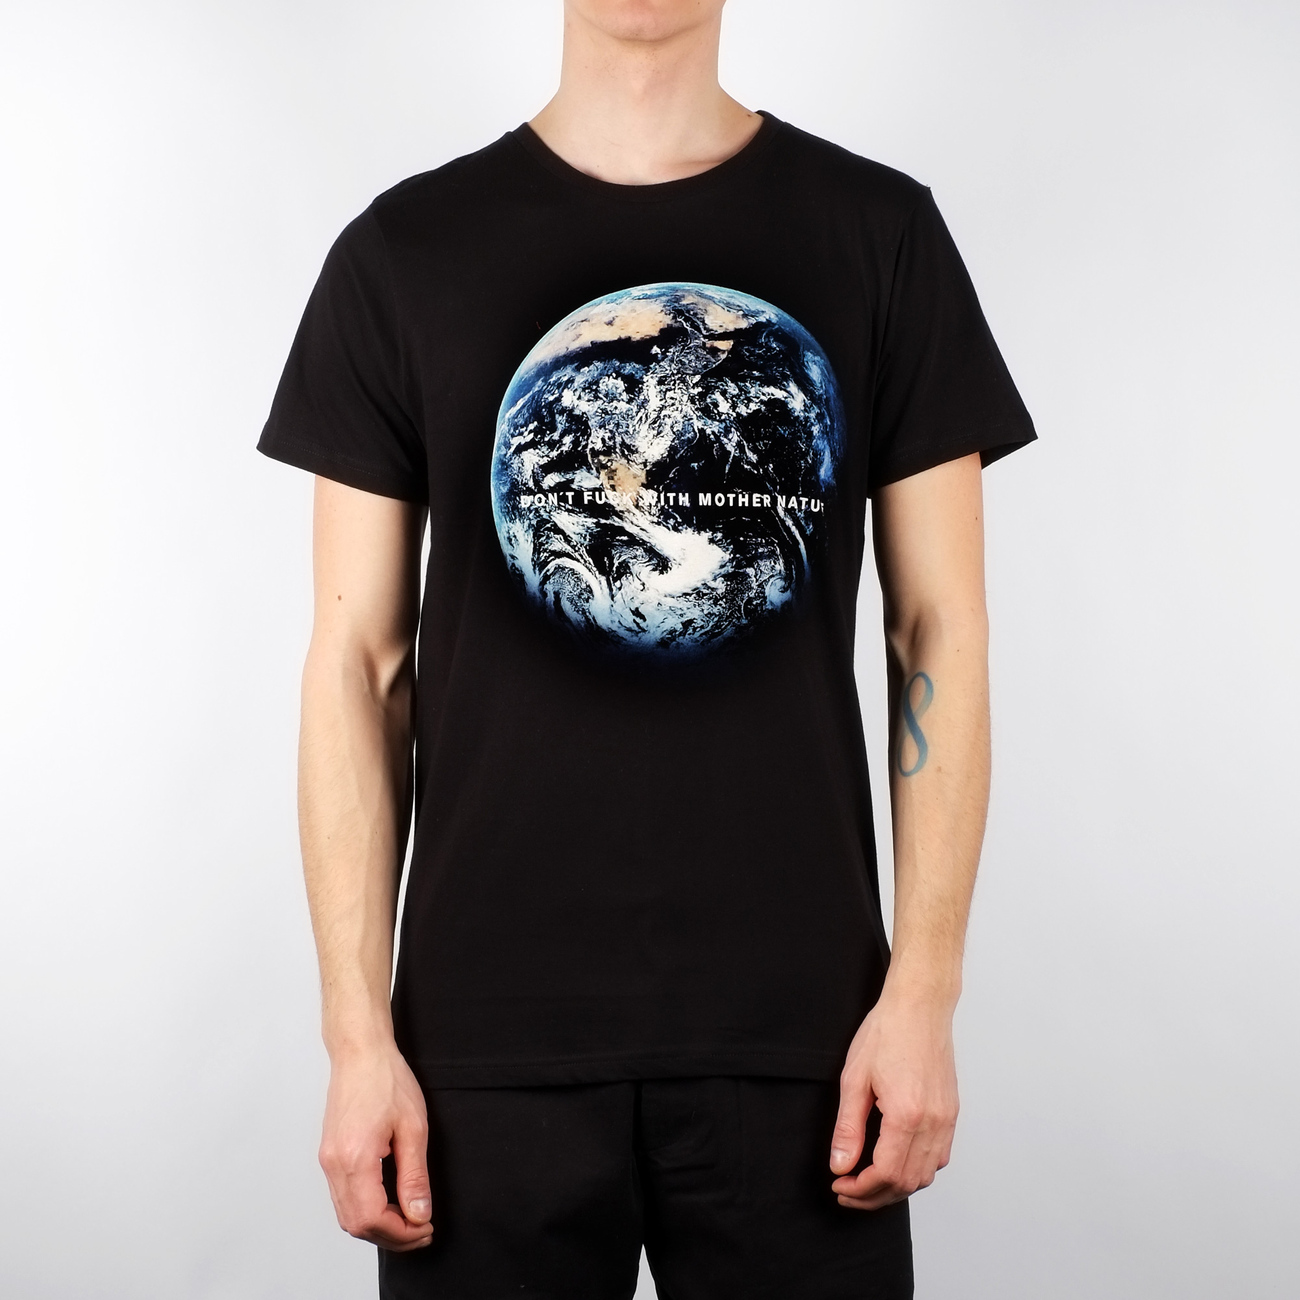 Stockholm T-shirt Mother Nature